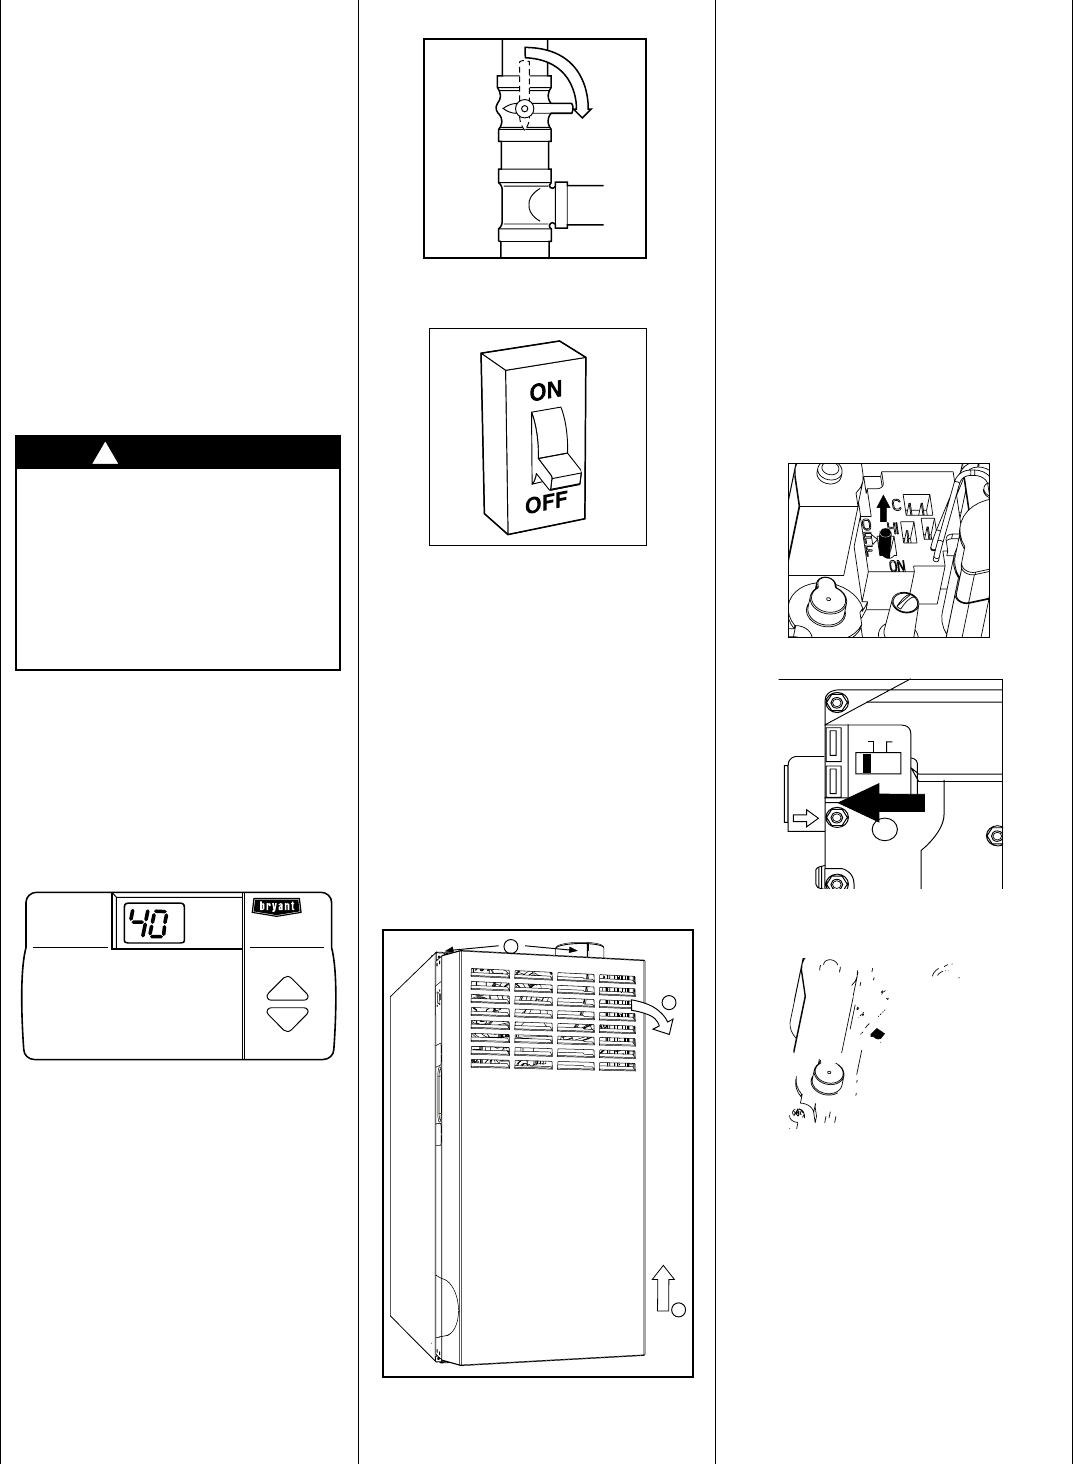 8c15g2 likewise 05029668AA likewise 315603886365332694 moreover Dgaa056bdtb Coleman Gas Furnace Parts besides 320318592223216997. on aa hvac wiring diagram